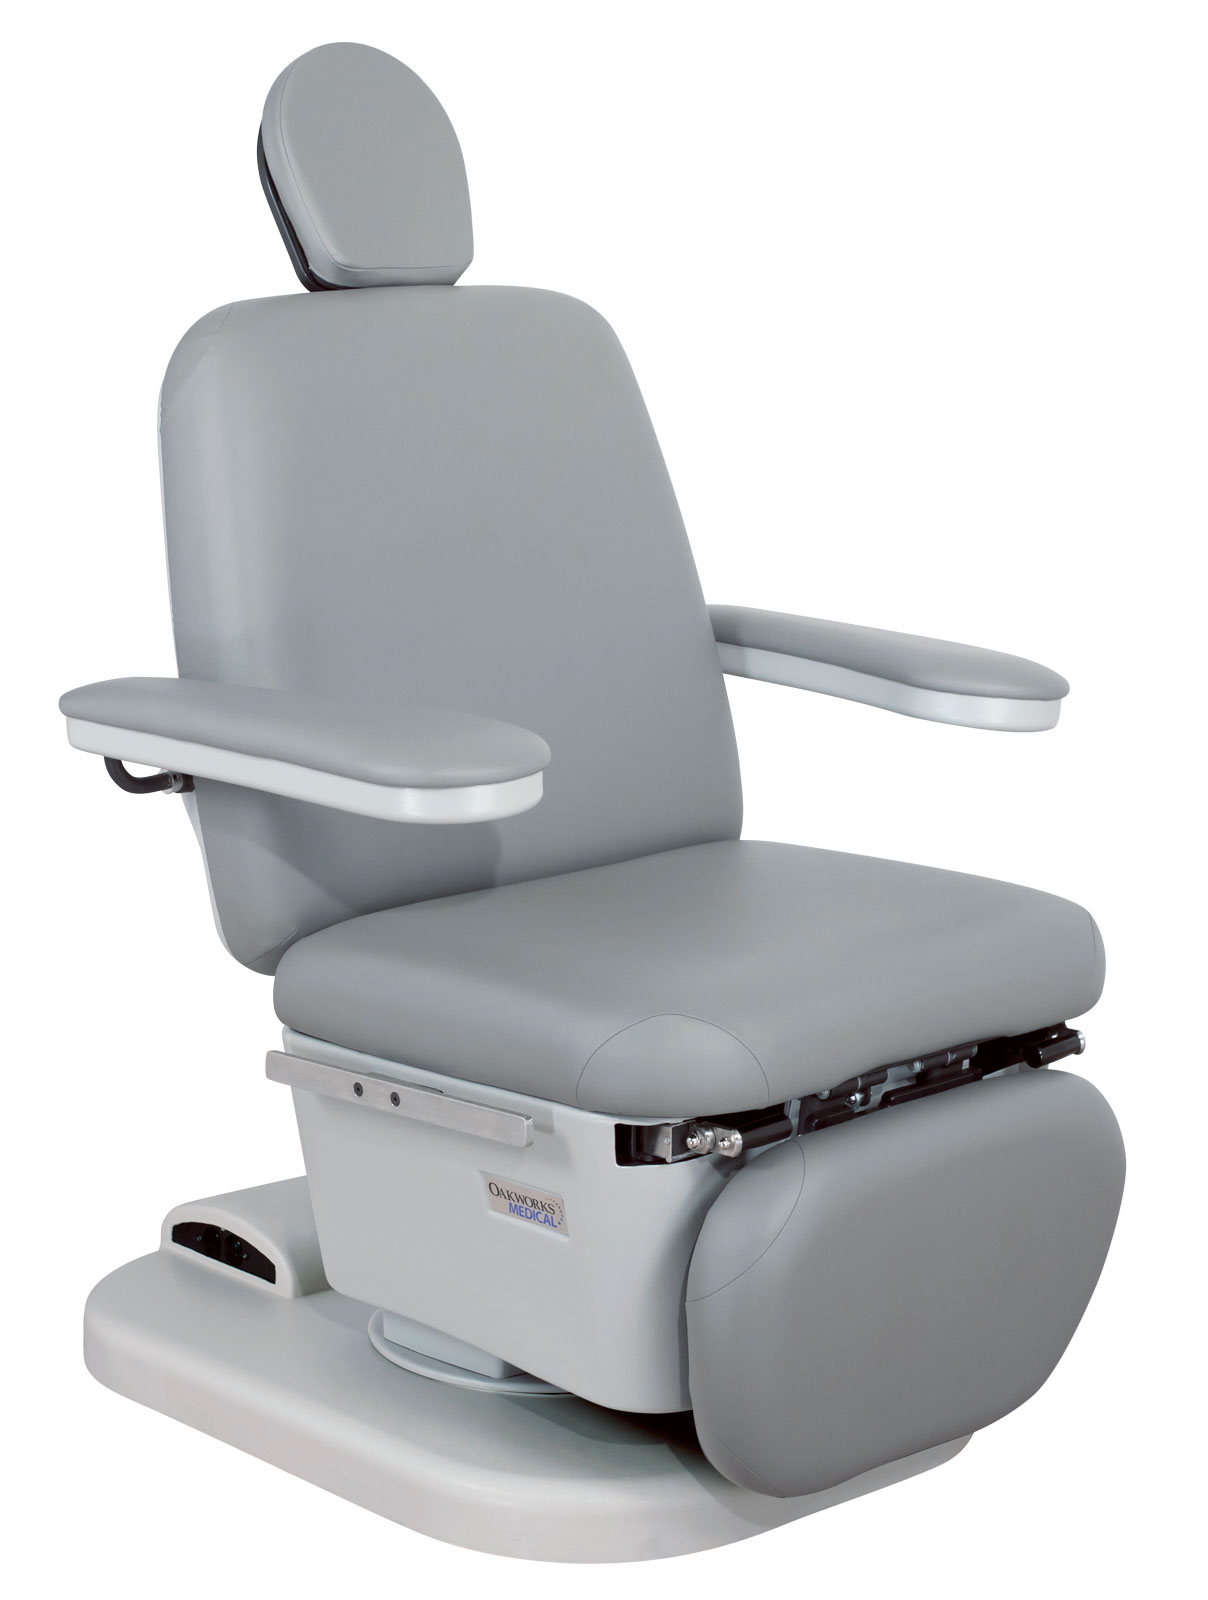 300 series procedure chair|procedure chairs|oakworks medical